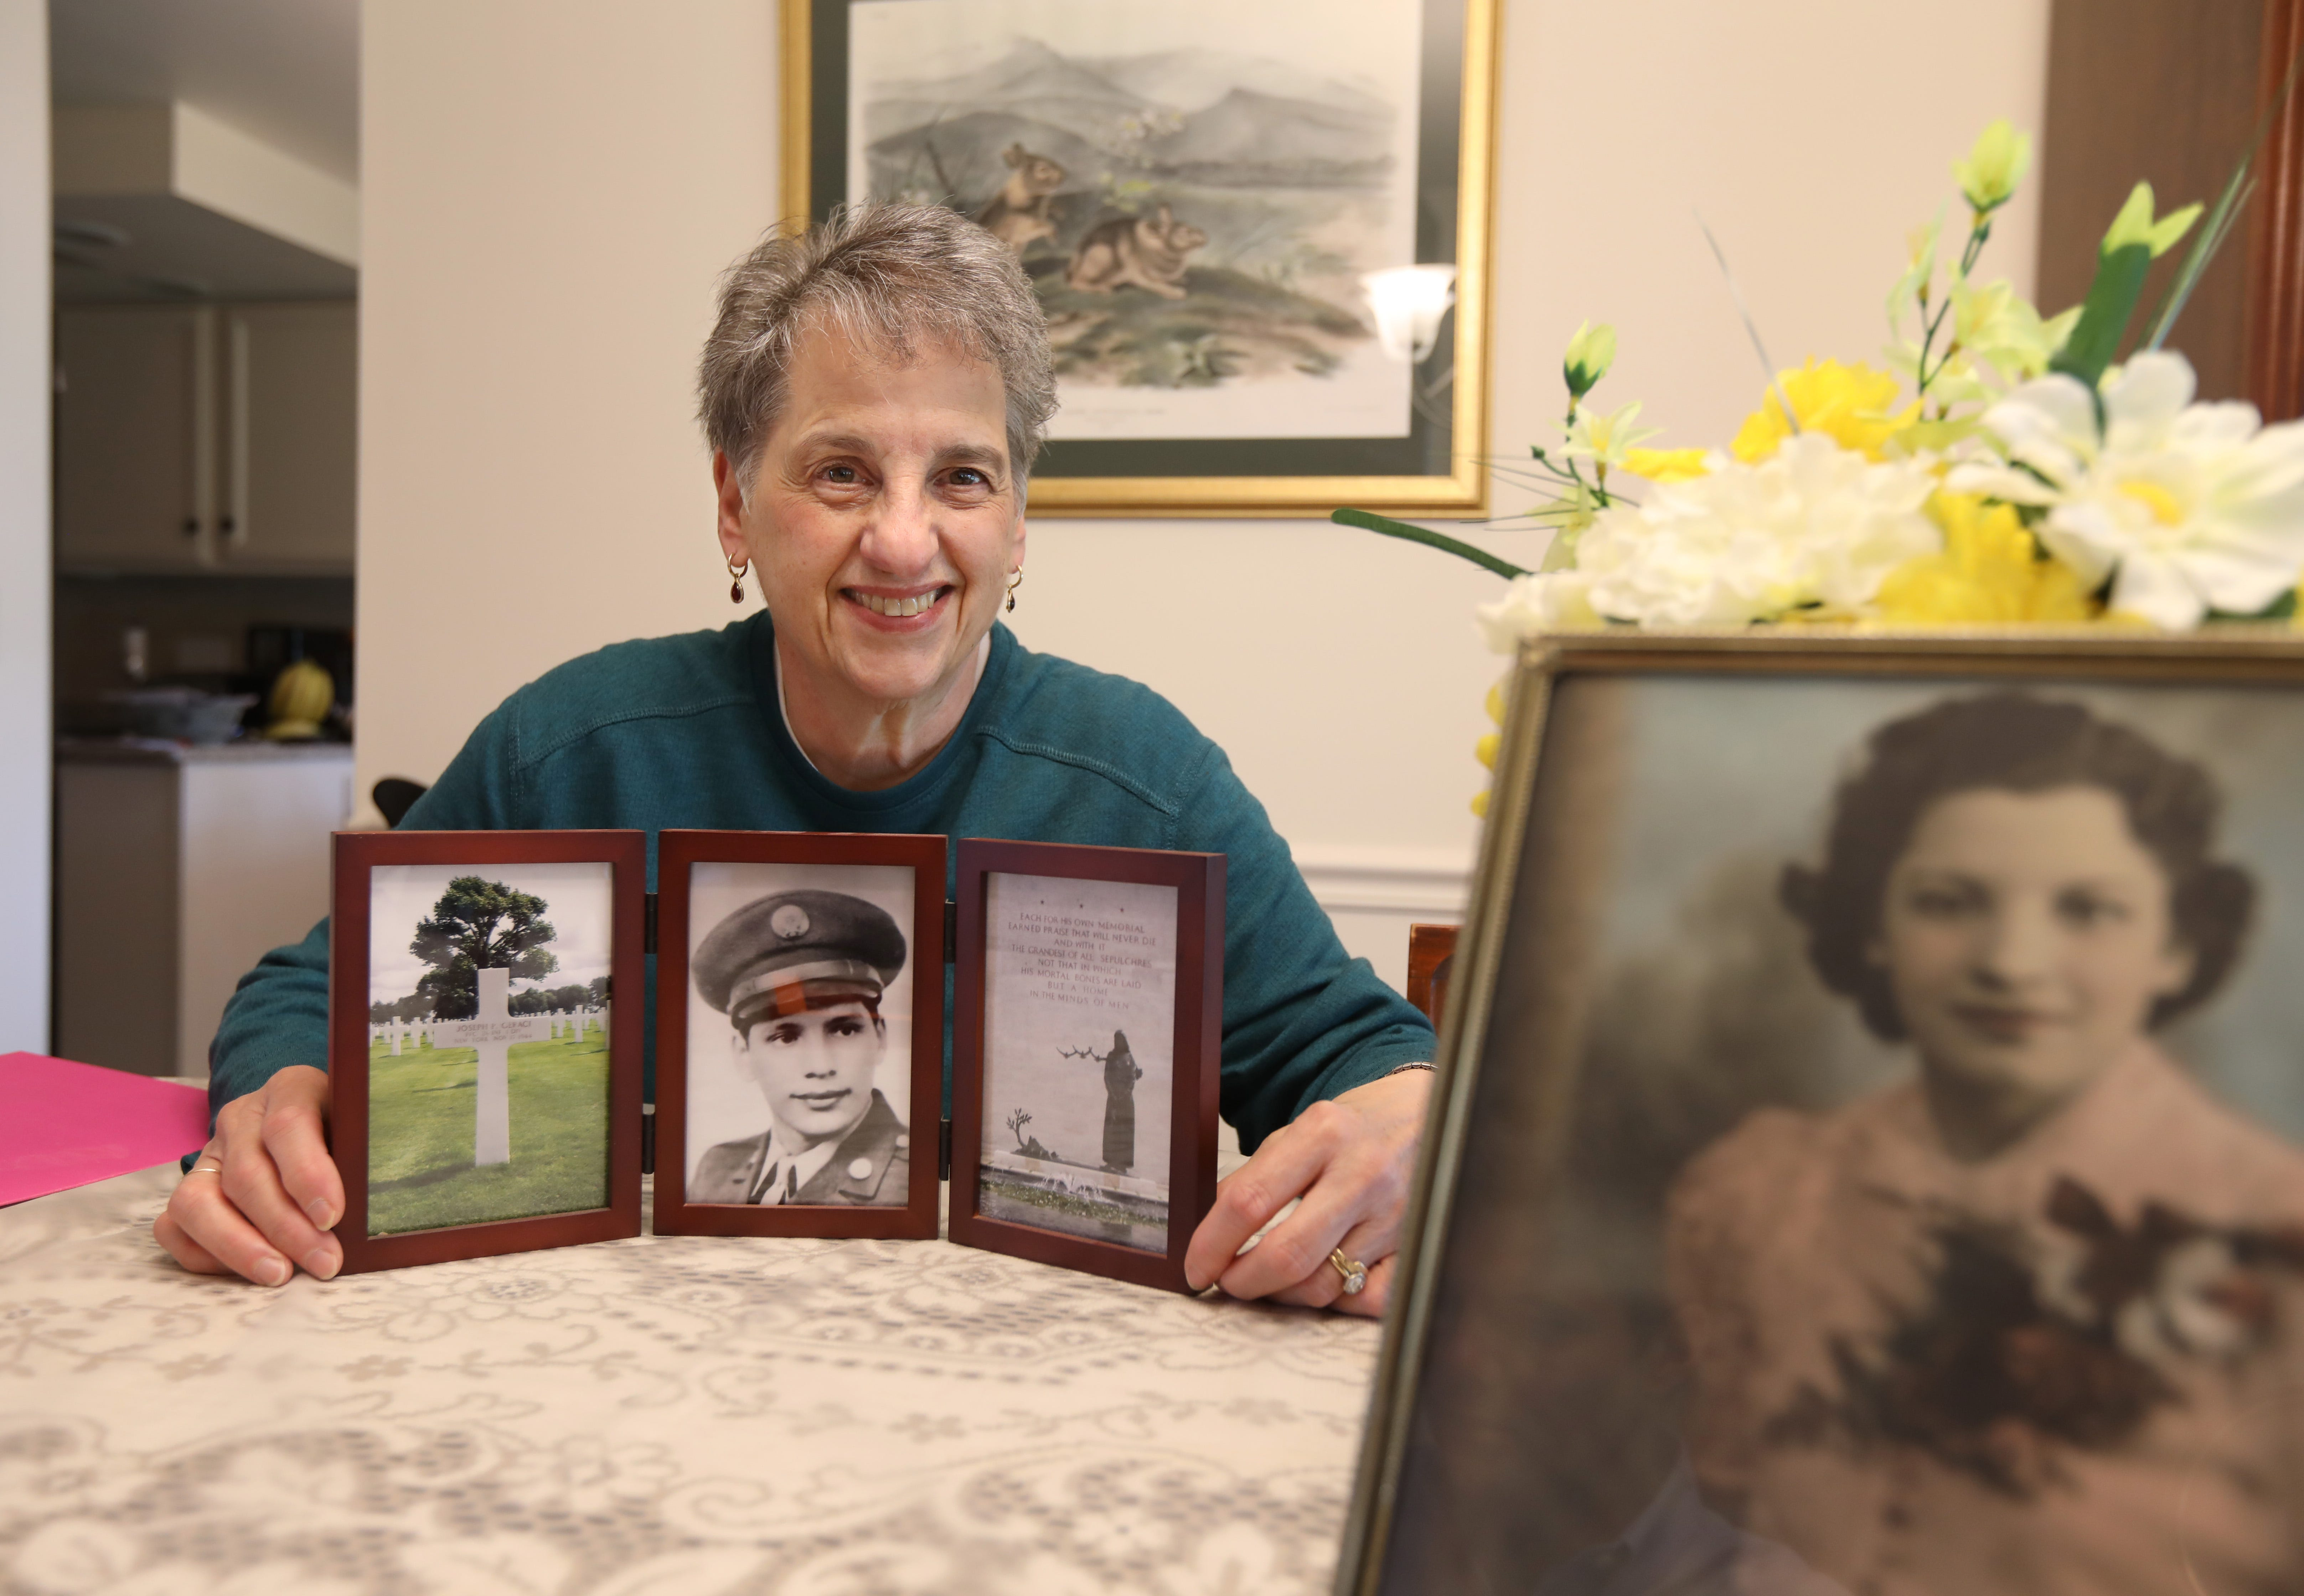 Pittsford Woman Never Forgot Her Uncle Joe